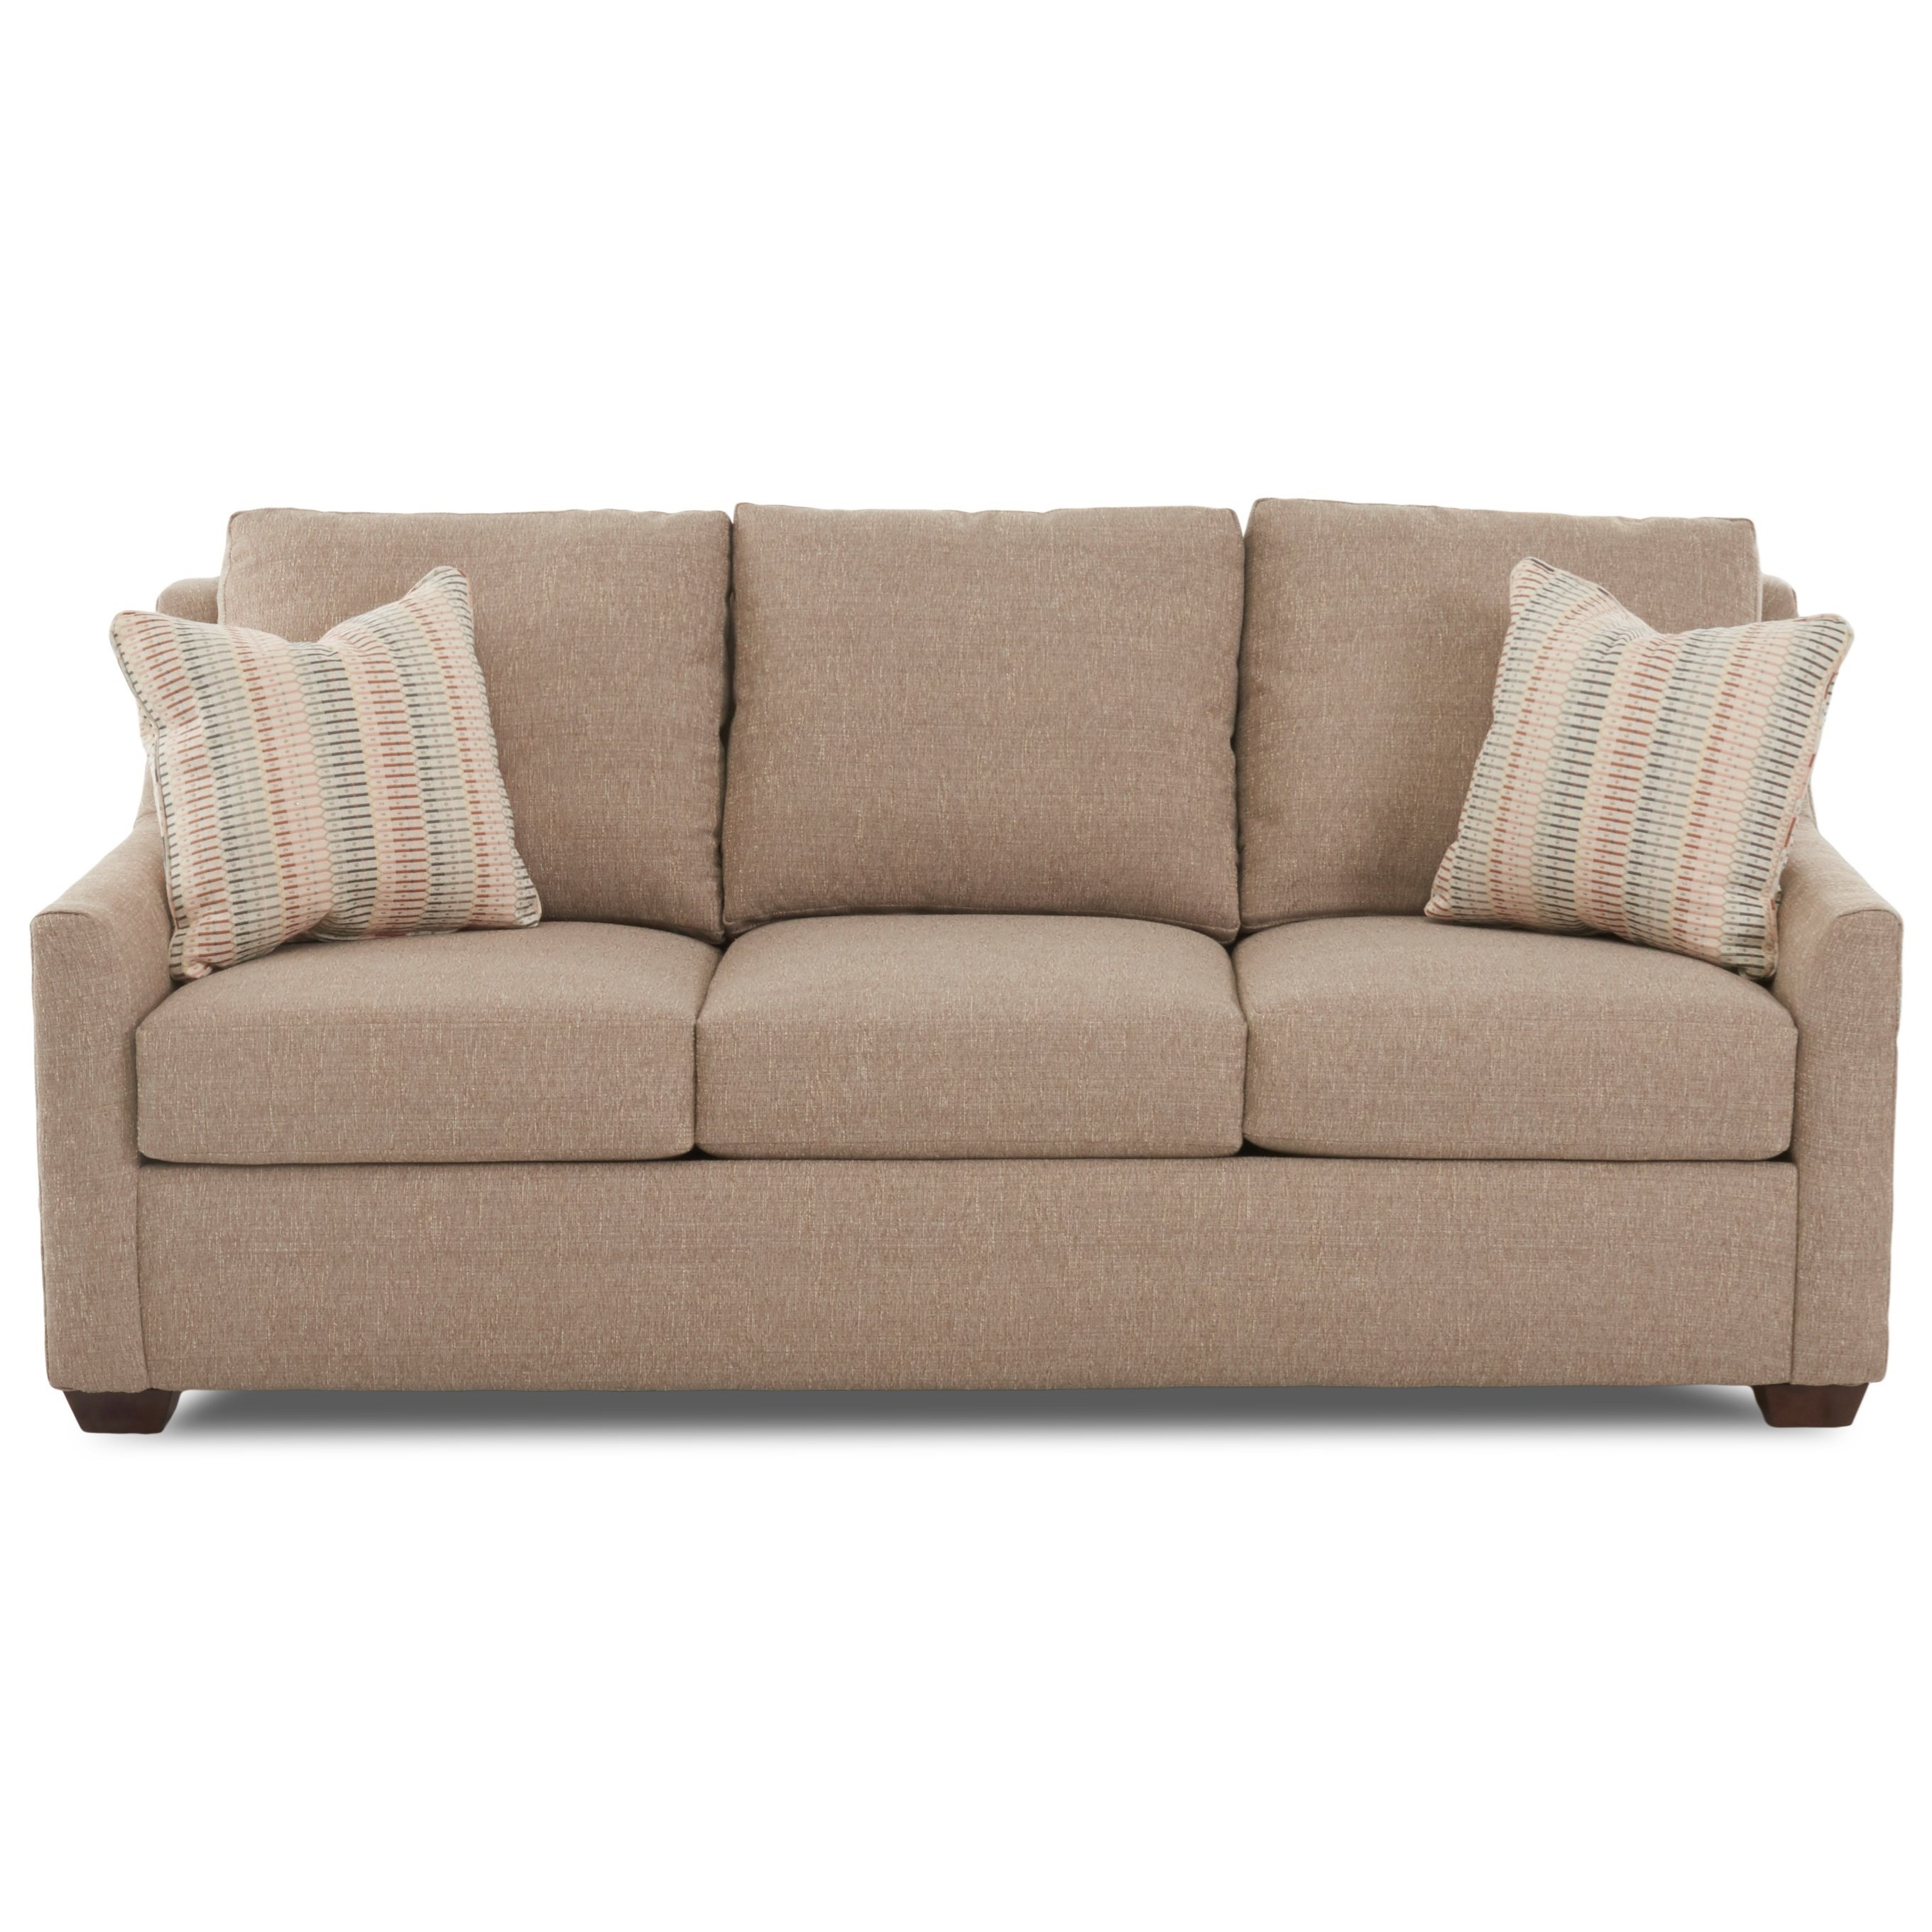 Grayton Sleeper Sofa w/ Enso Memory Foam Mattress by Klaussner at Northeast Factory Direct